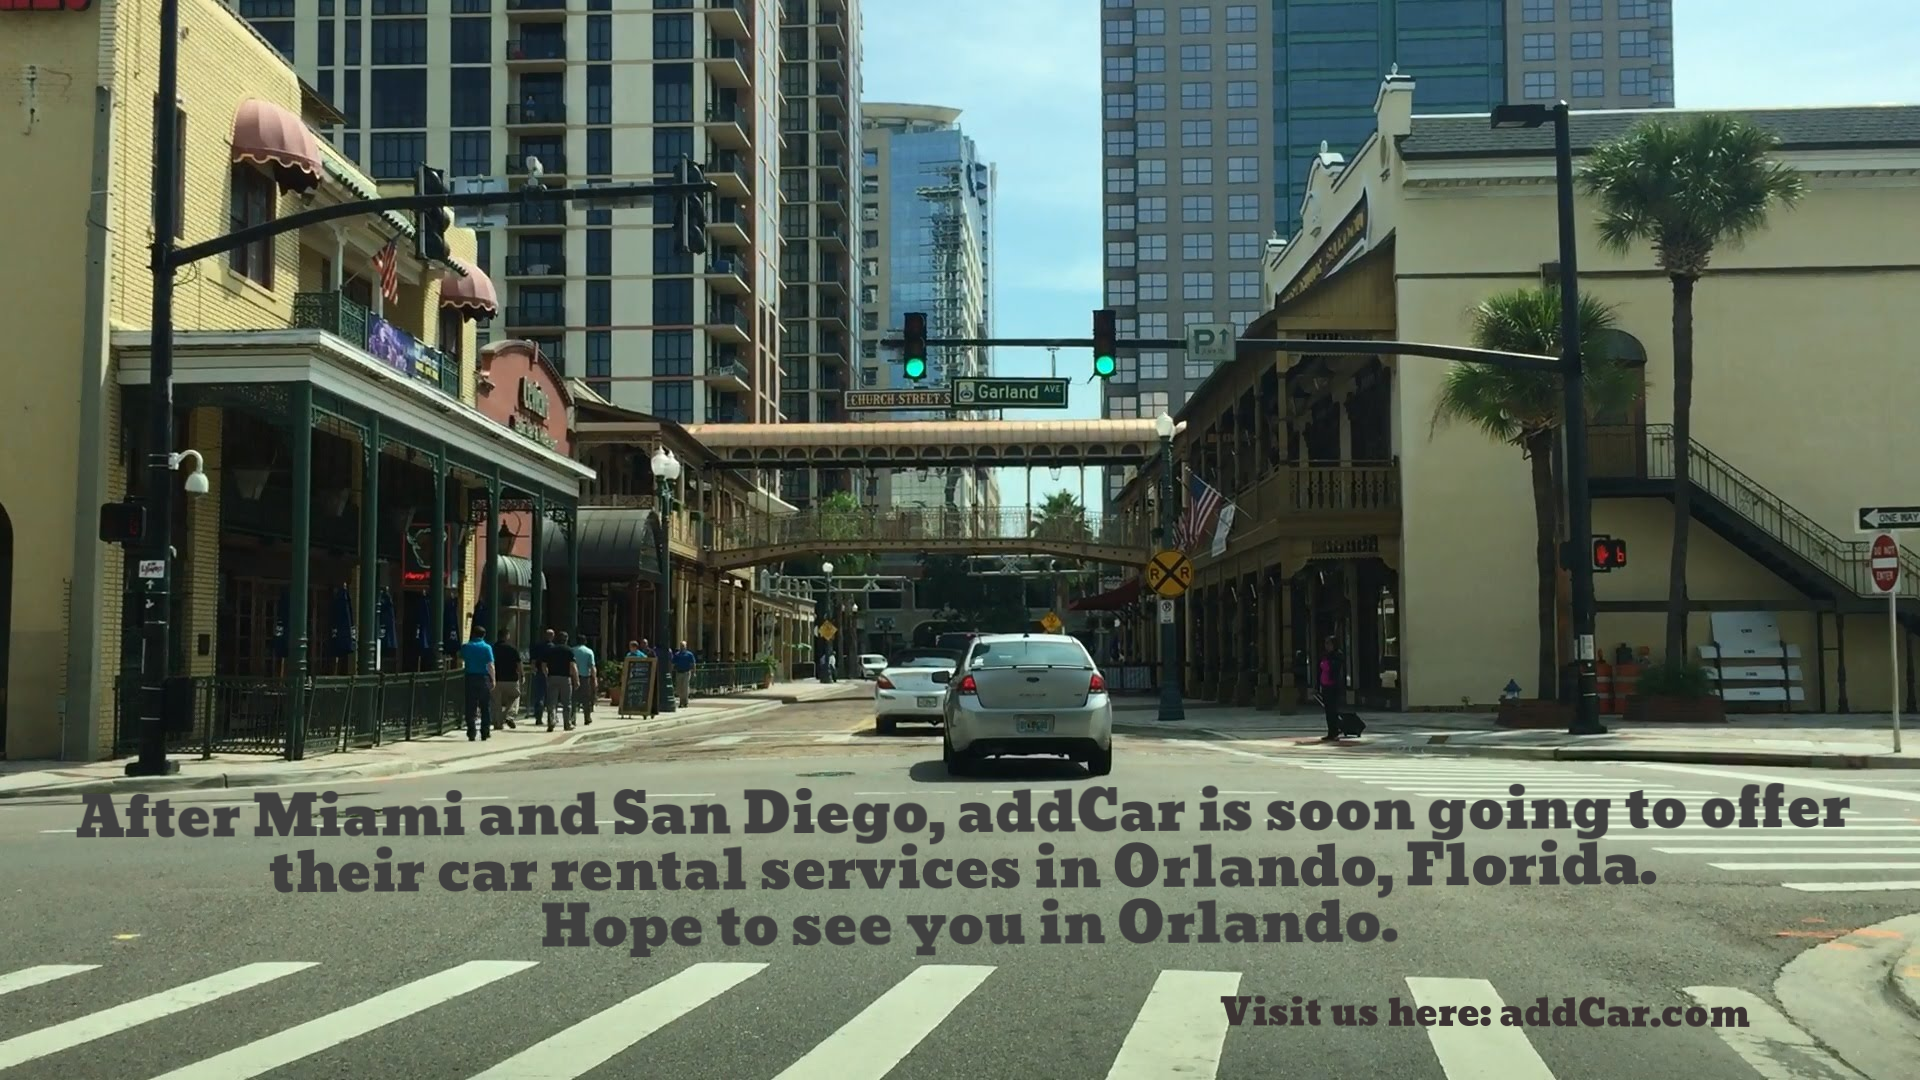 After Miami and SanDiego, addCar is soon going to offer